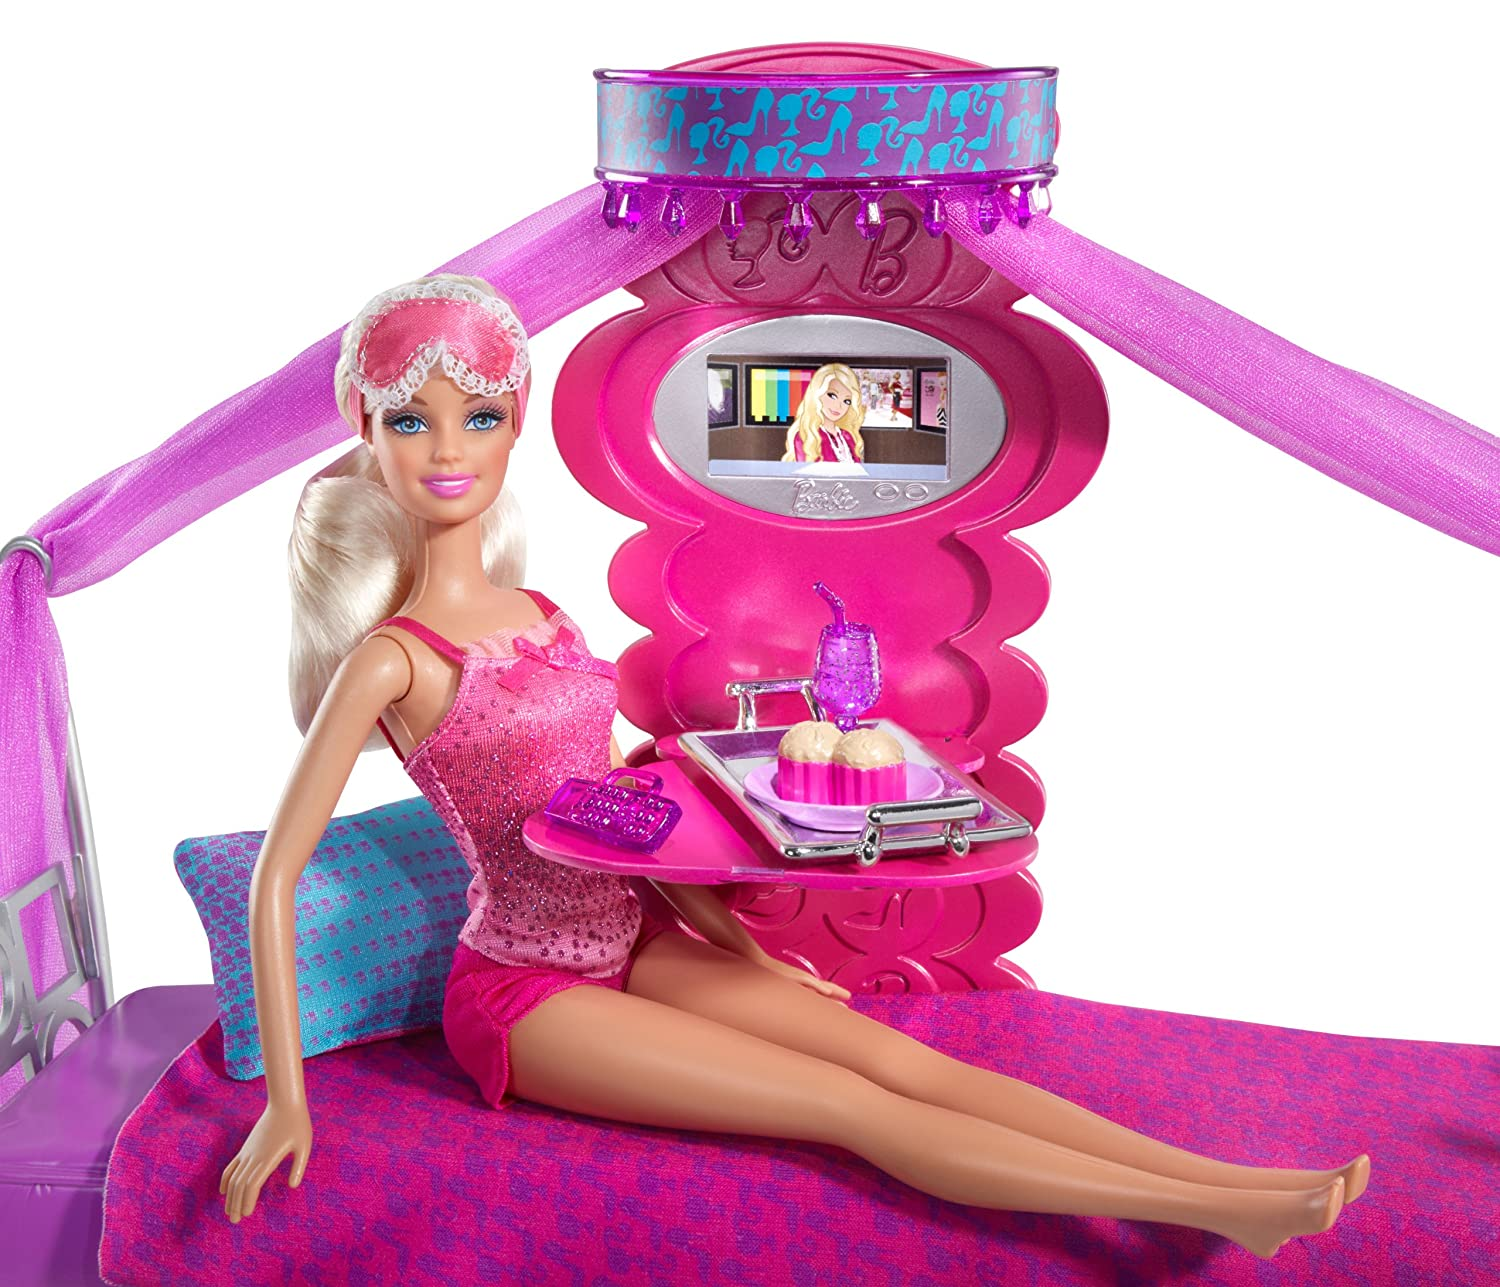 Barbie Bed To Breakfast Deluxe Bedroom and Doll Set  Furniture   Amazon  Canada. Barbie Bed To Breakfast Deluxe Bedroom and Doll Set  Furniture